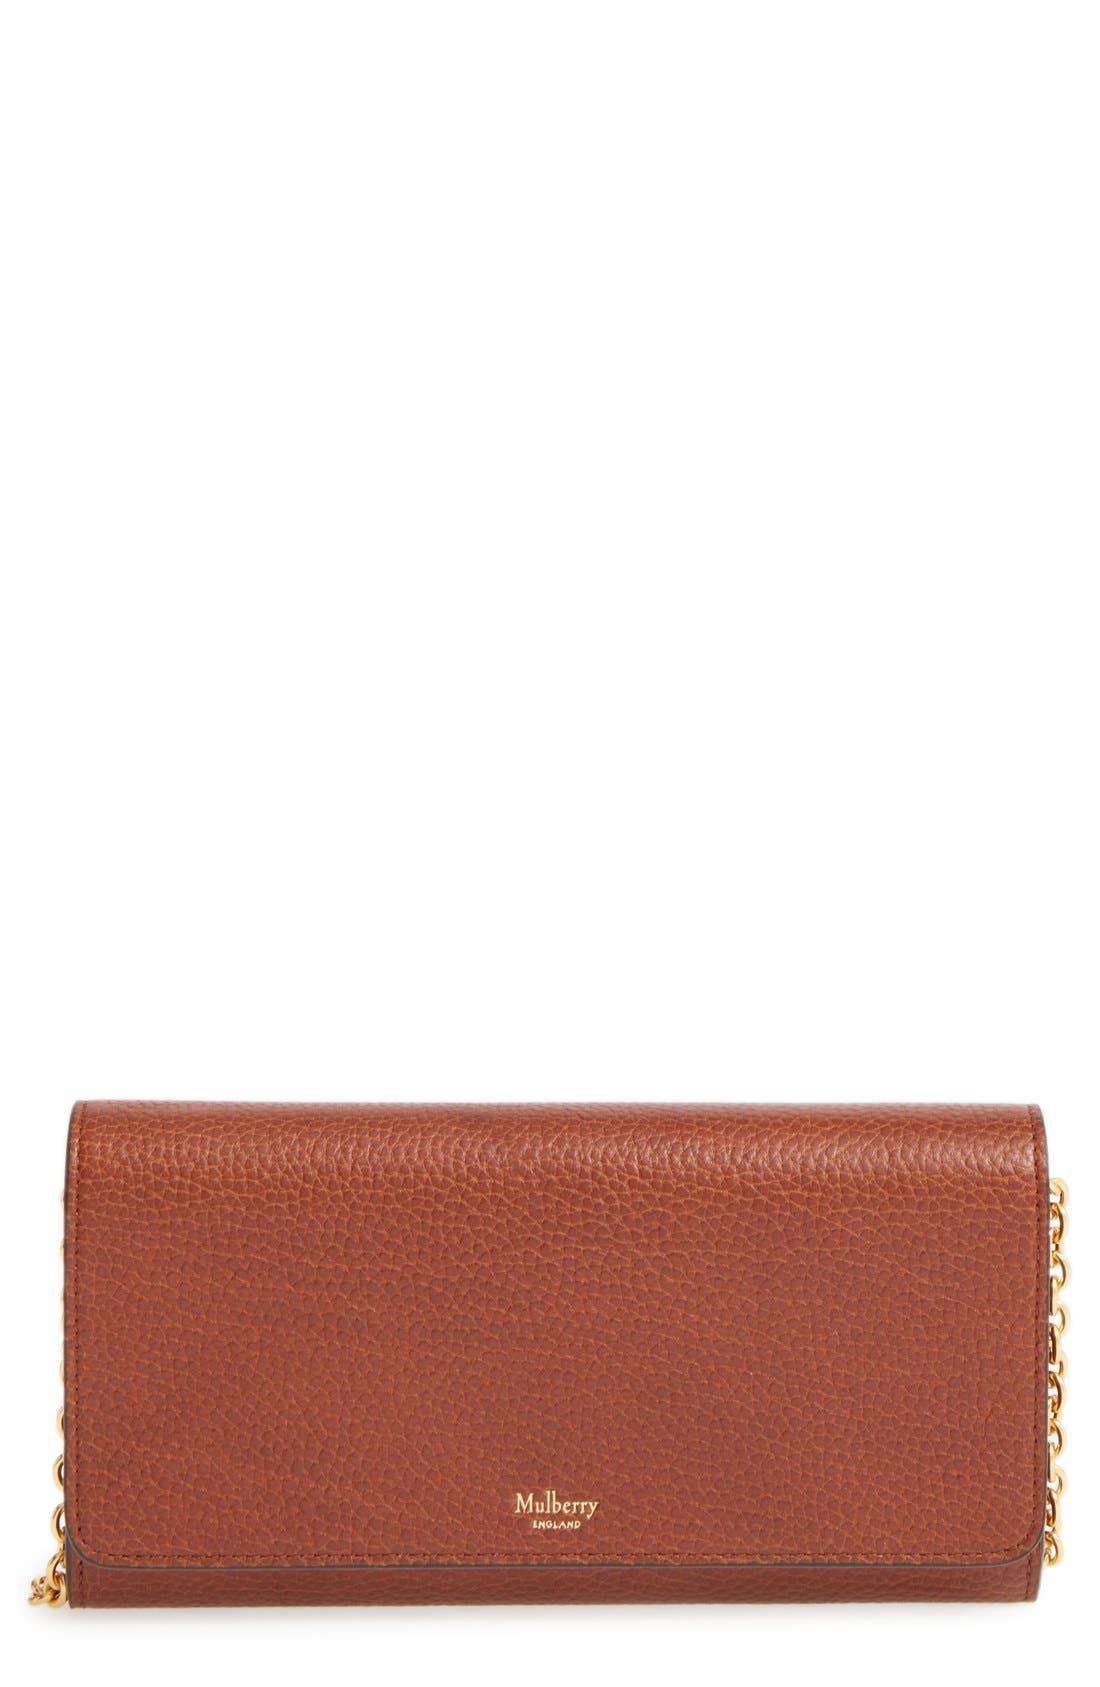 'Continental - Classic' Convertible Leather Clutch,                         Main,                         color, 200